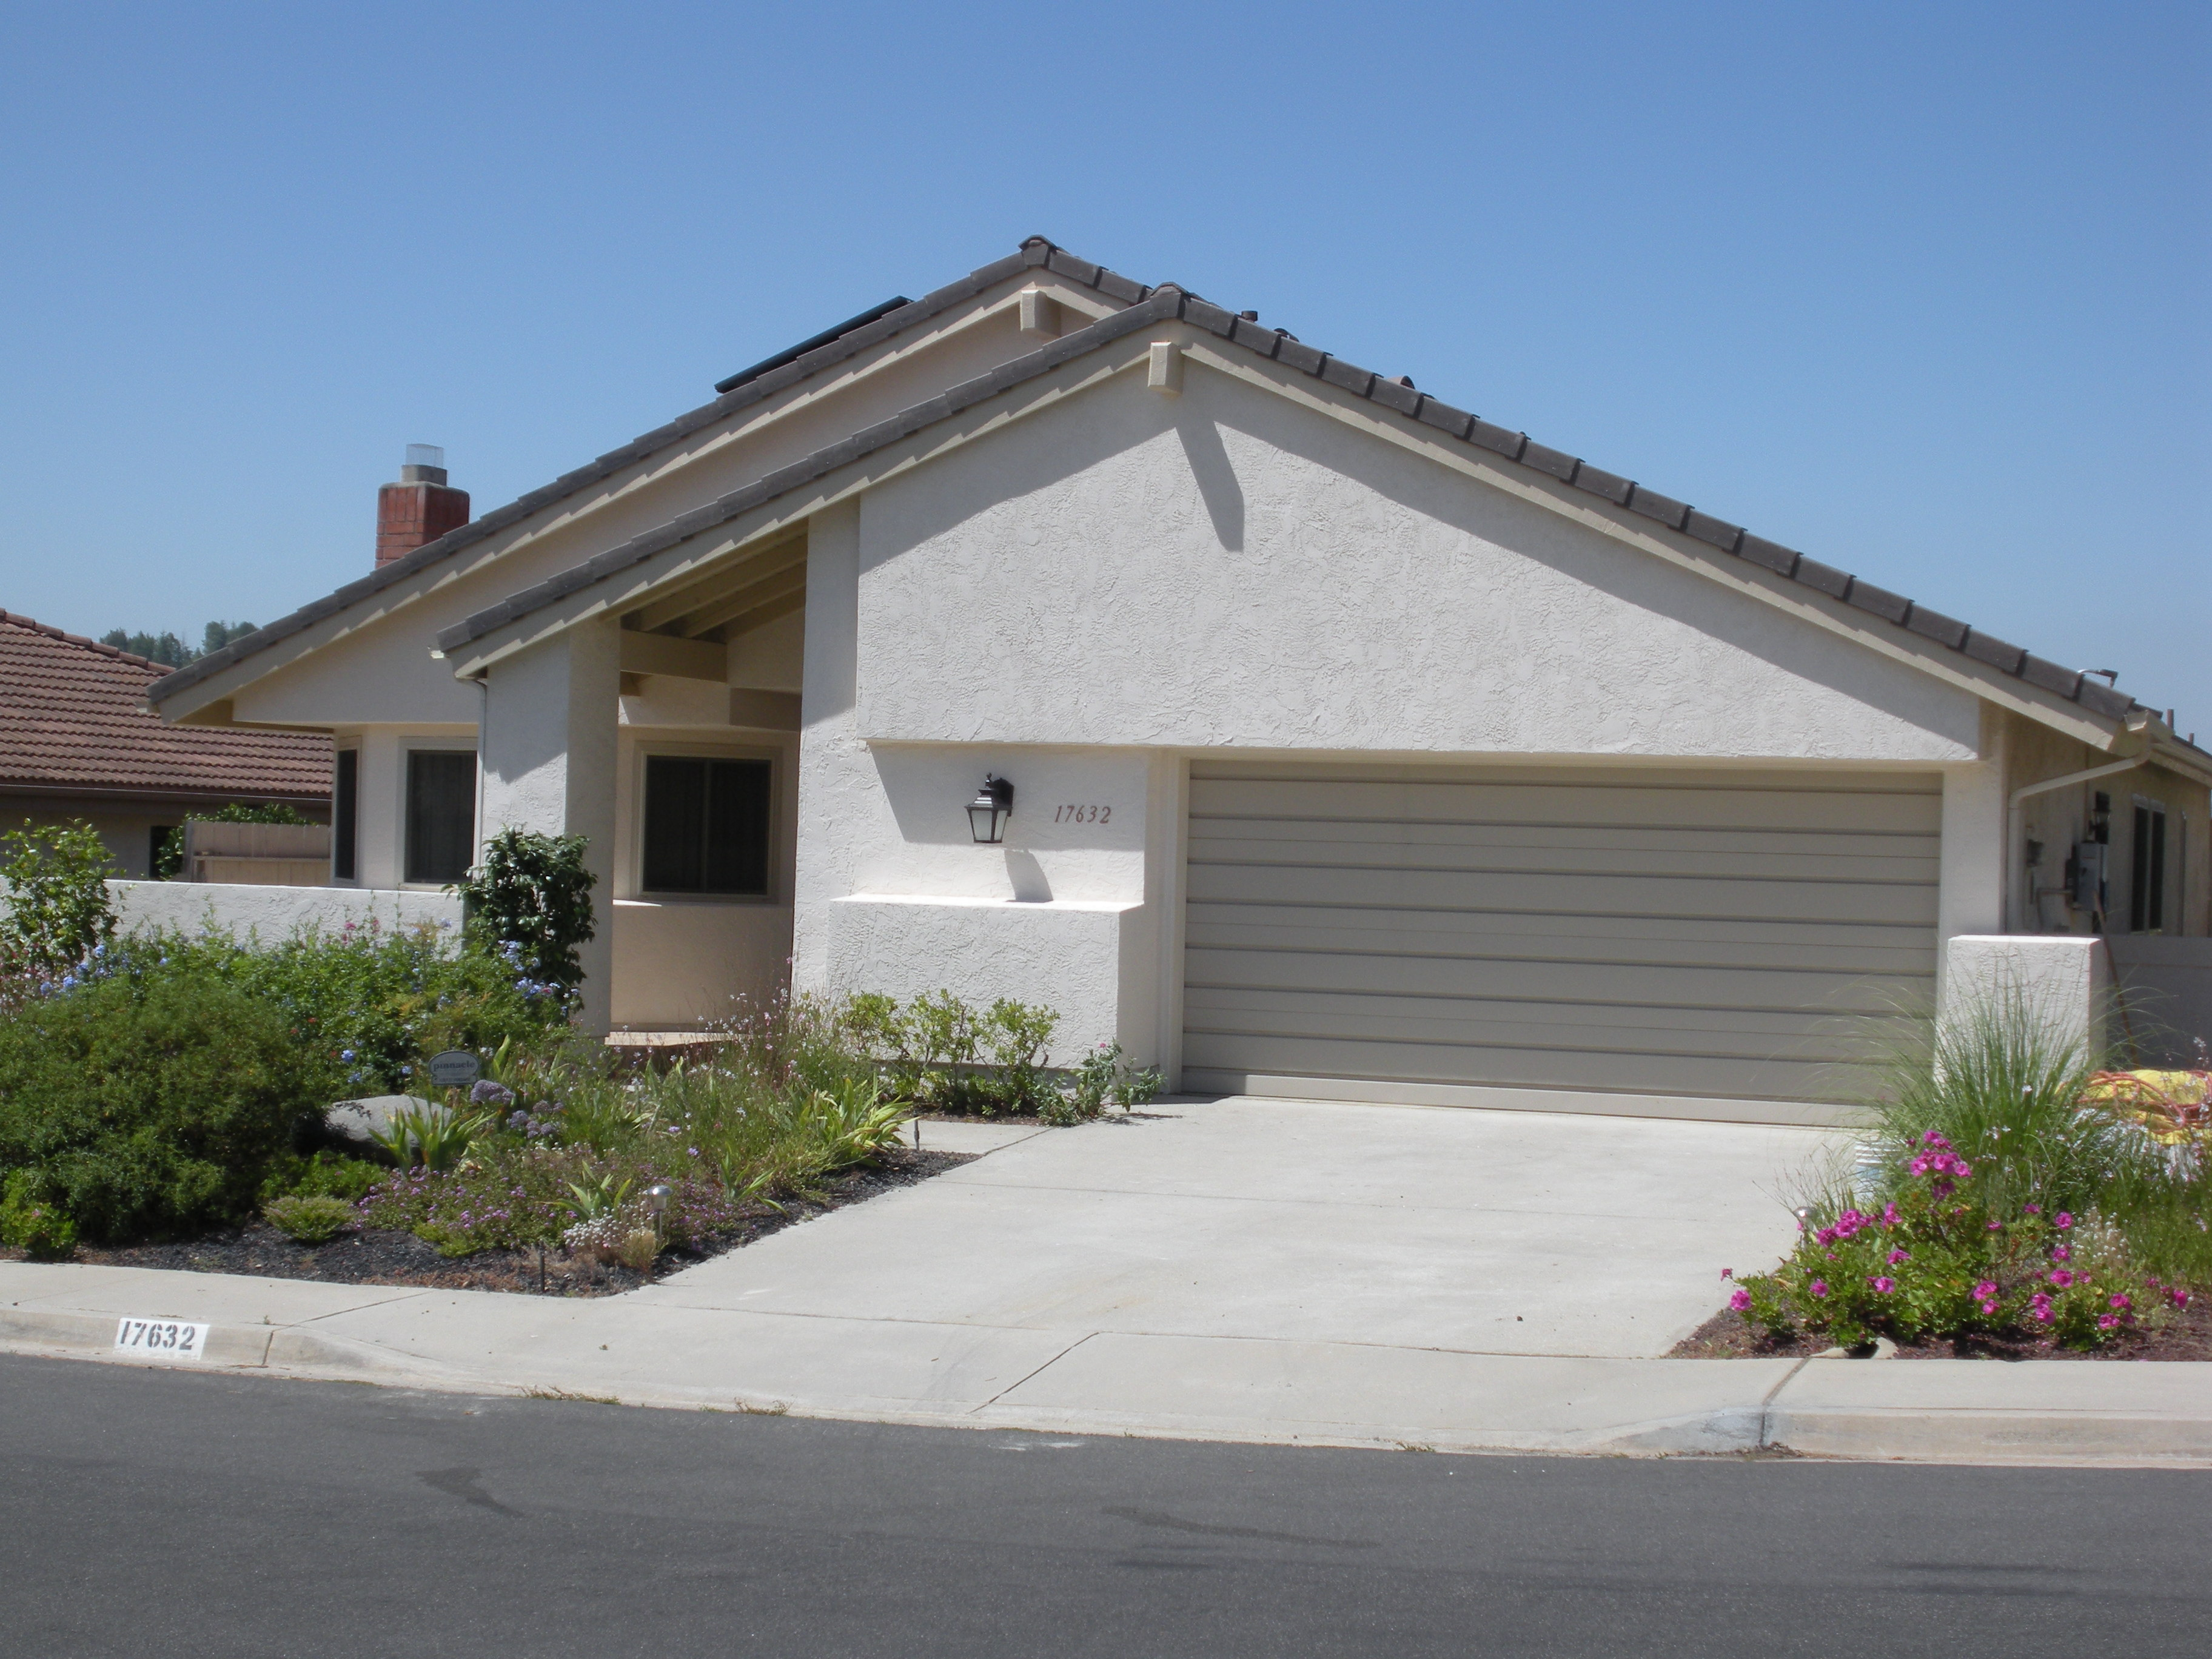 Replaced Wood Siding With New Stucco In Rancho Bernardo